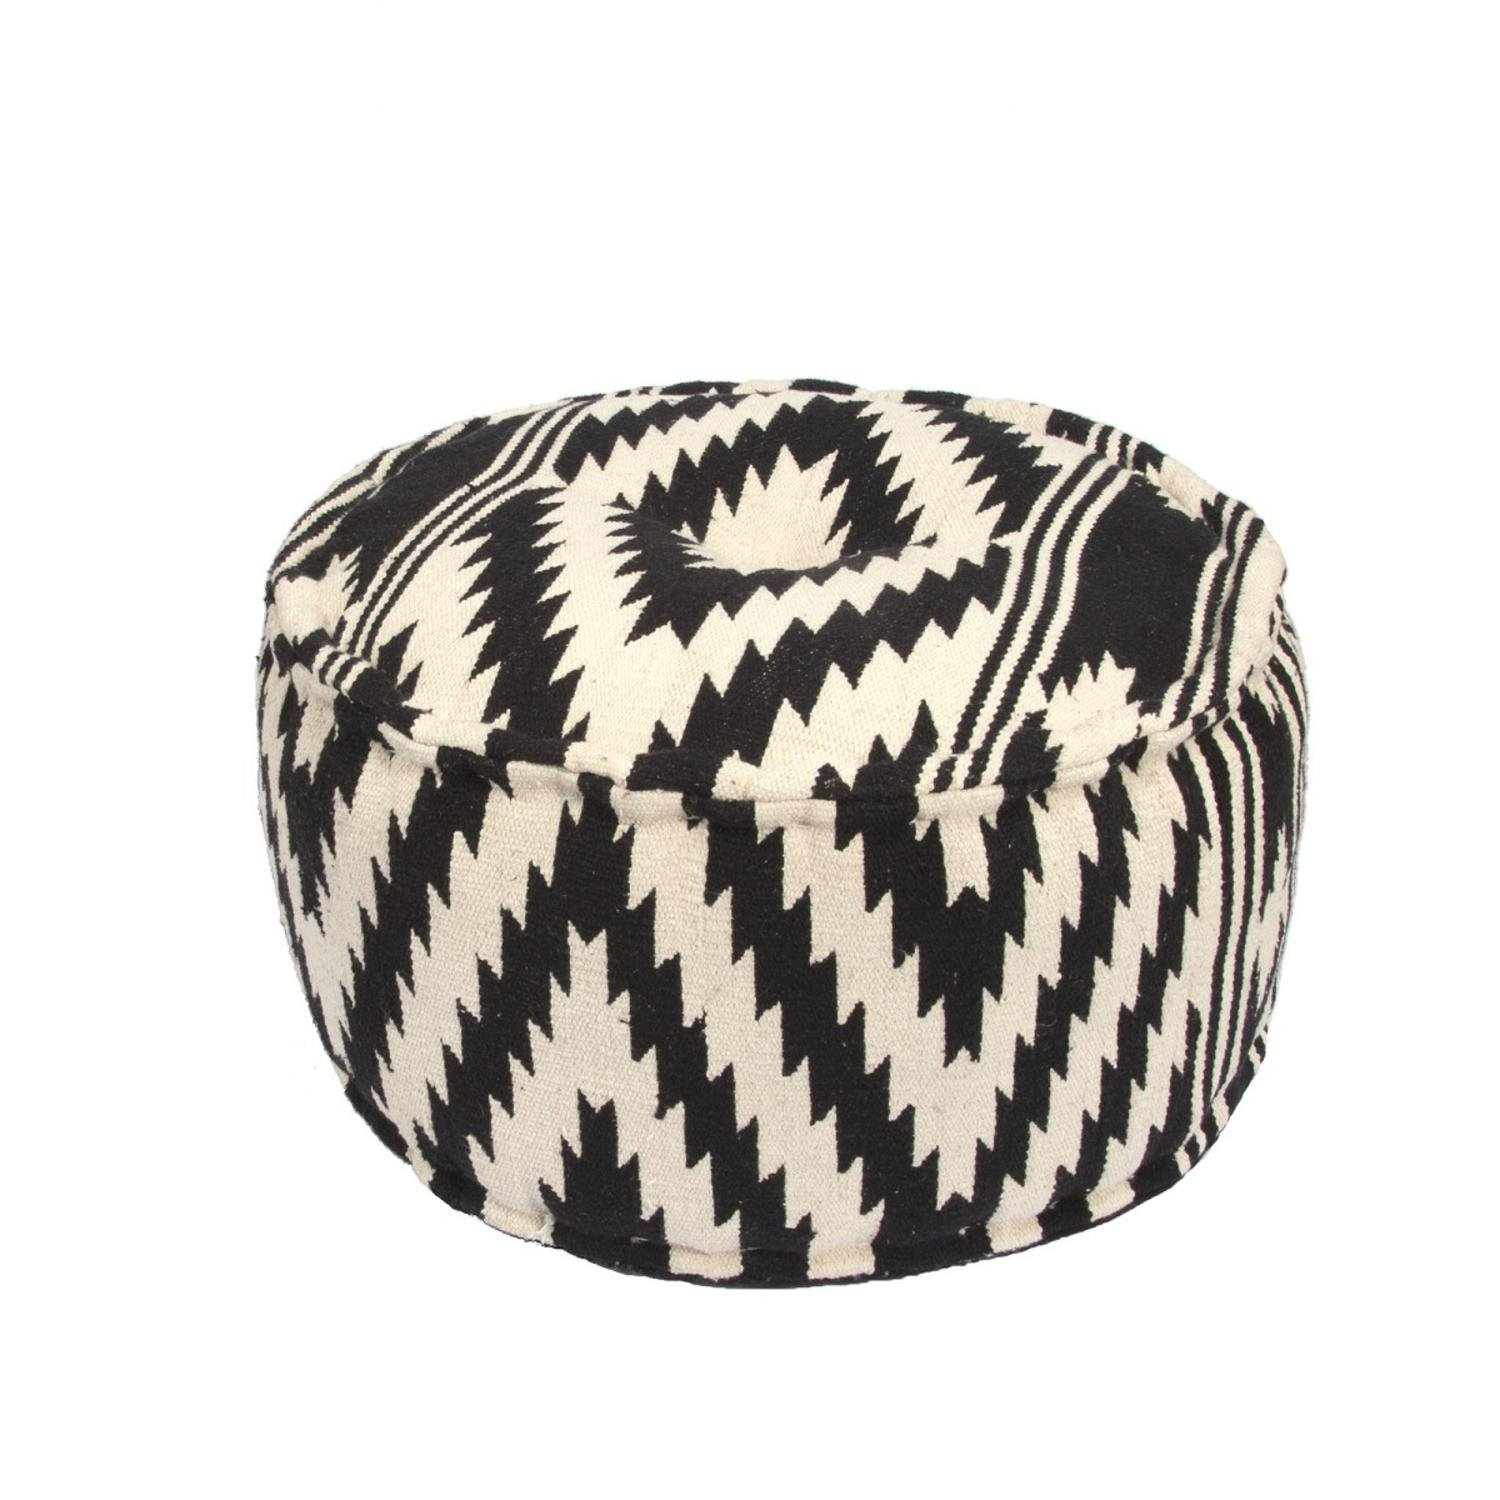 24'' Black and Tan Geo Tribal Pattern Round Ottoman Pouf by Diva At Home (Image #1)